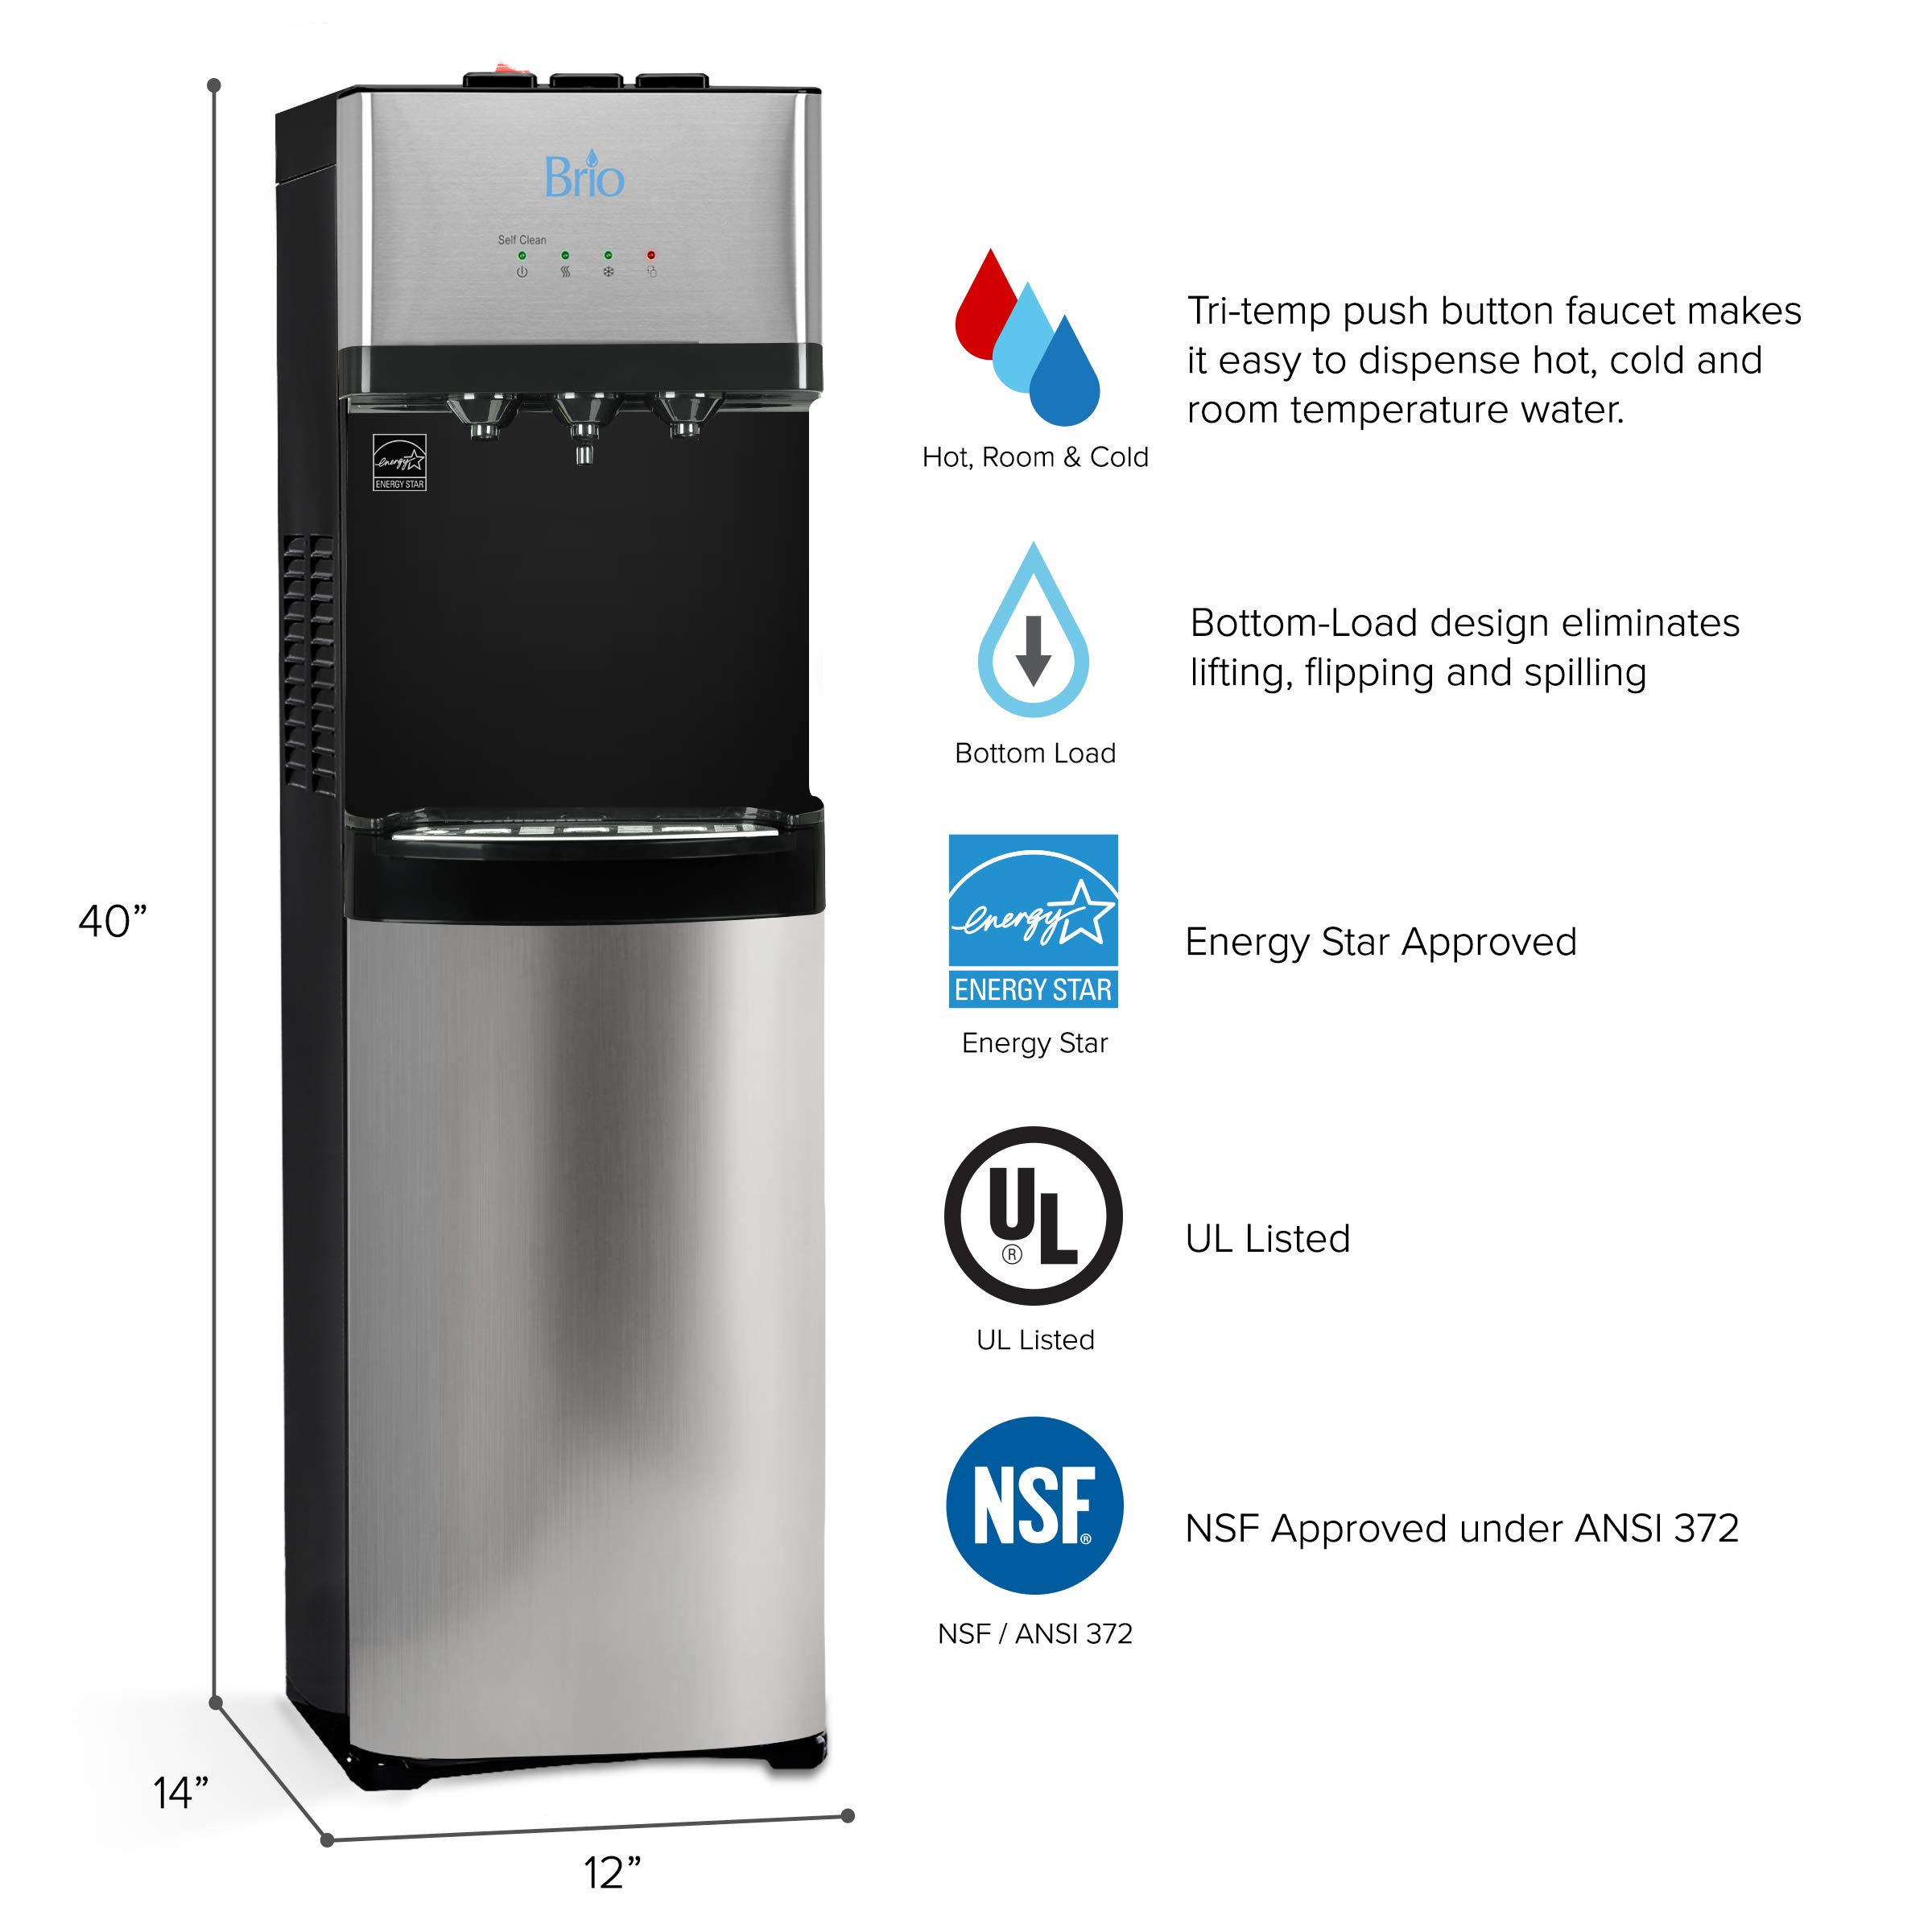 Brio Self Cleaning Bottom Loading Water Cooler Water Dispenser - Limited Edition - 3 Temperature Settings - Hot, Cold & Cool Water - UL/Energy Star Approved by Brio (Image #2)